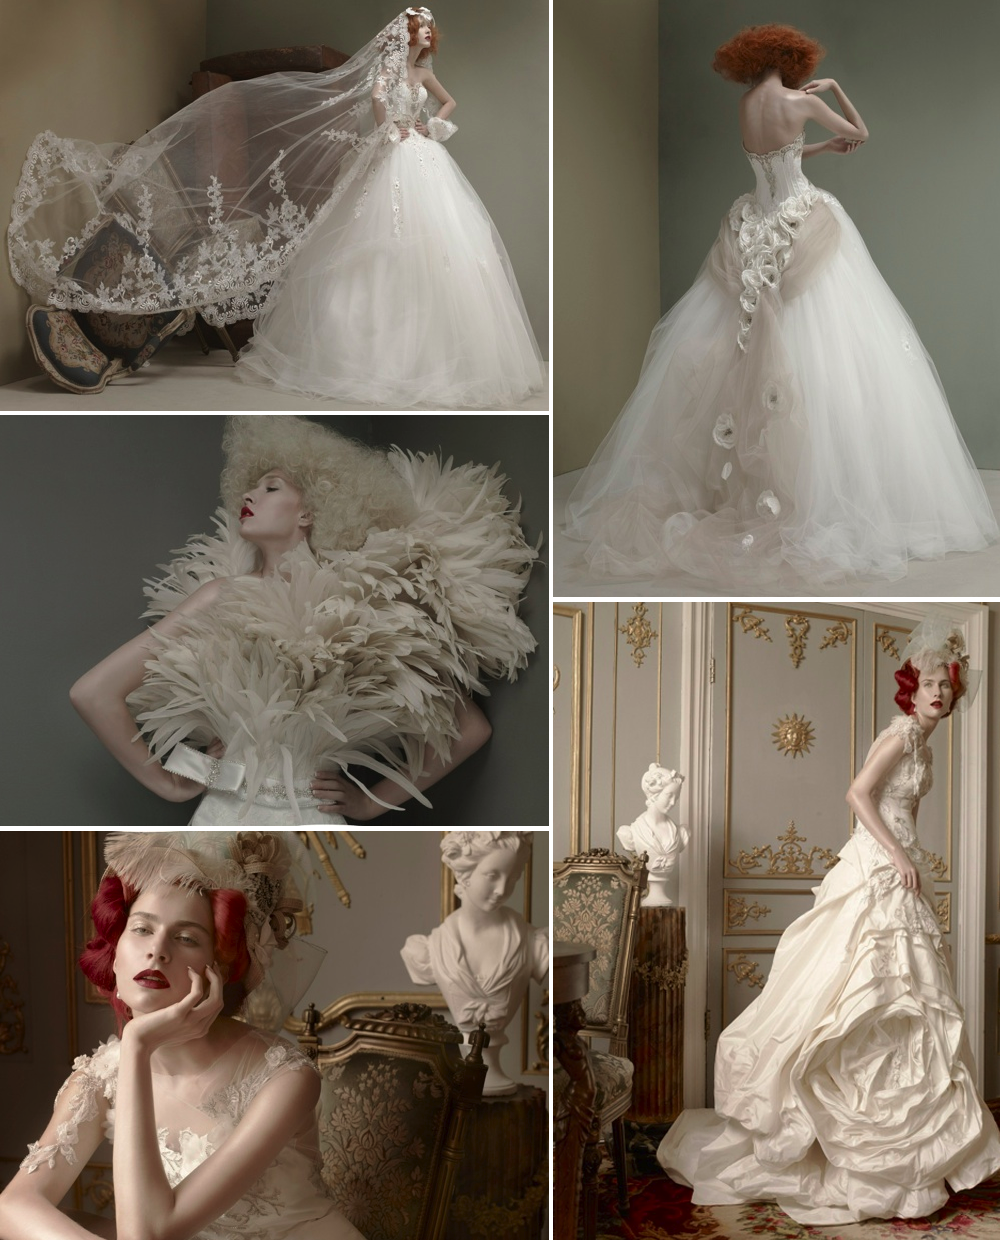 St-pucchi-couture-wedding-dresses-2012-bridal-gown.original